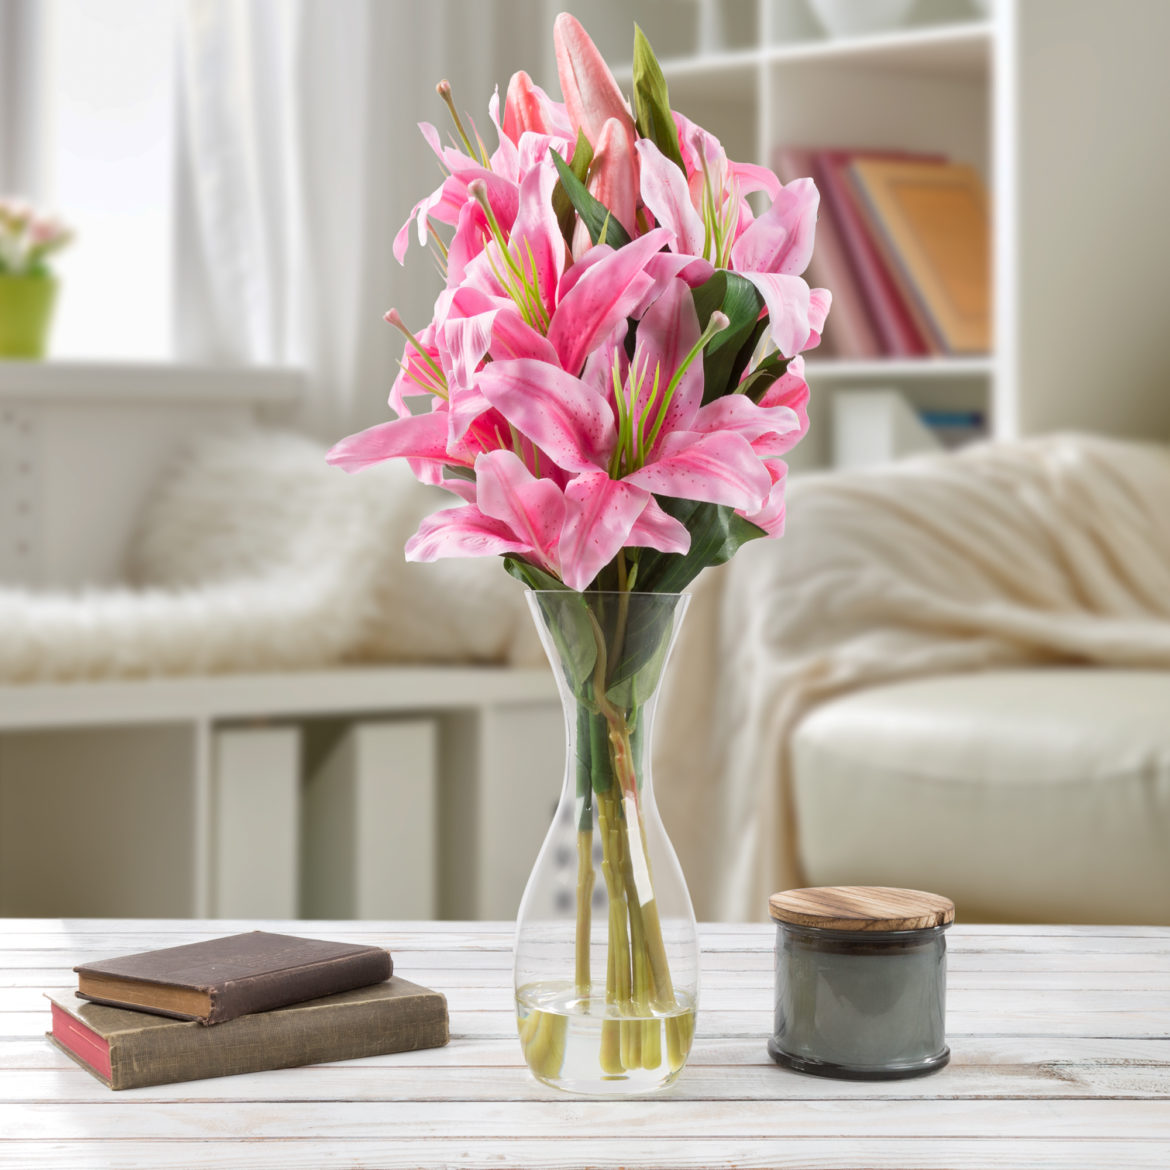 Guide to Choosing Perfect Flowers for your Home